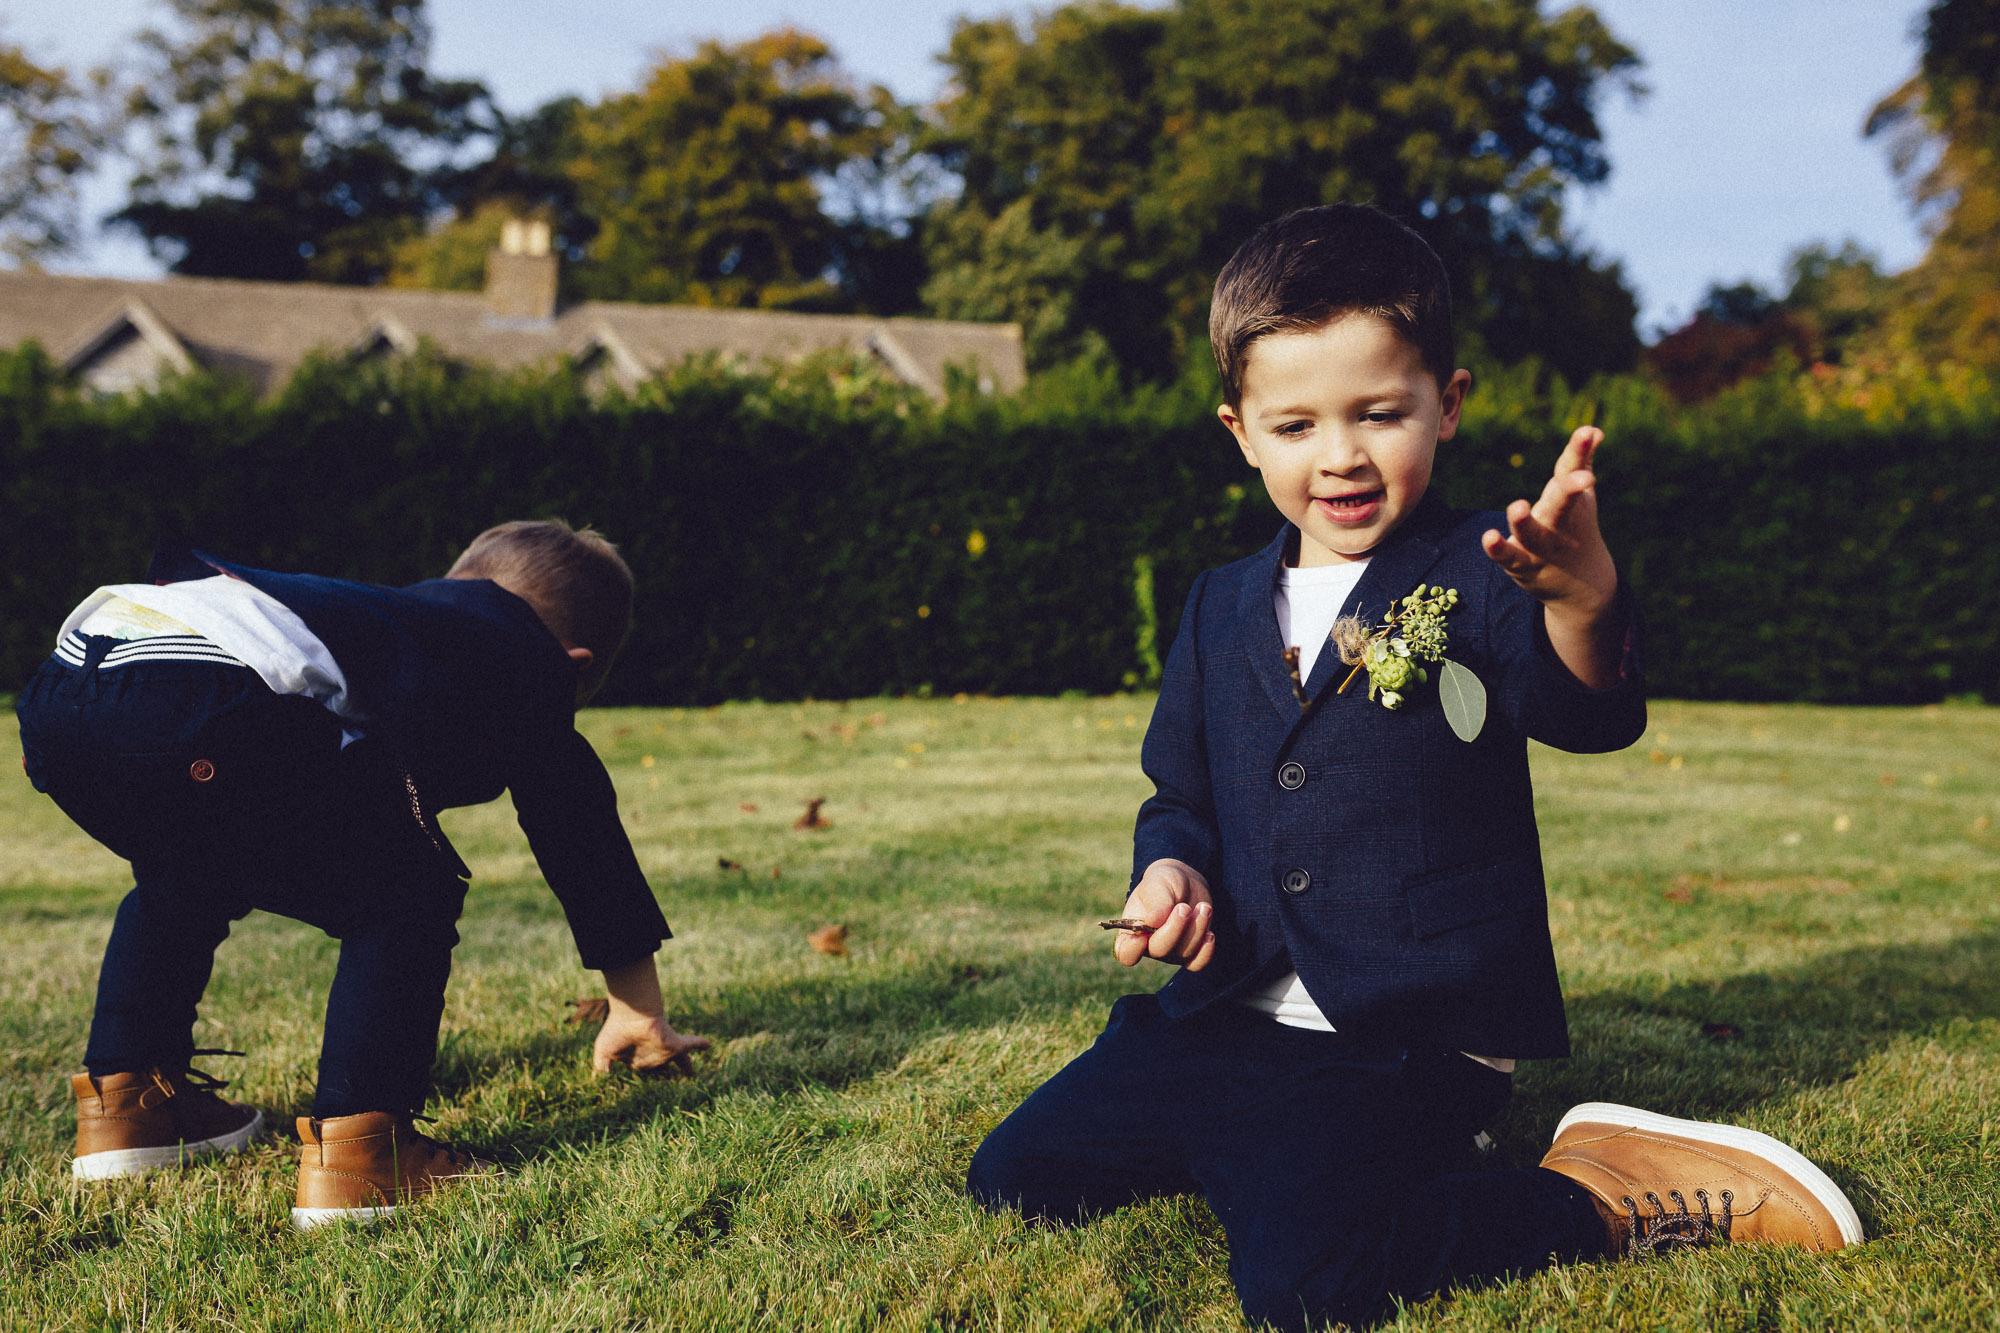 vibrant relaxed vibrant cotswold wedding-99.jpg